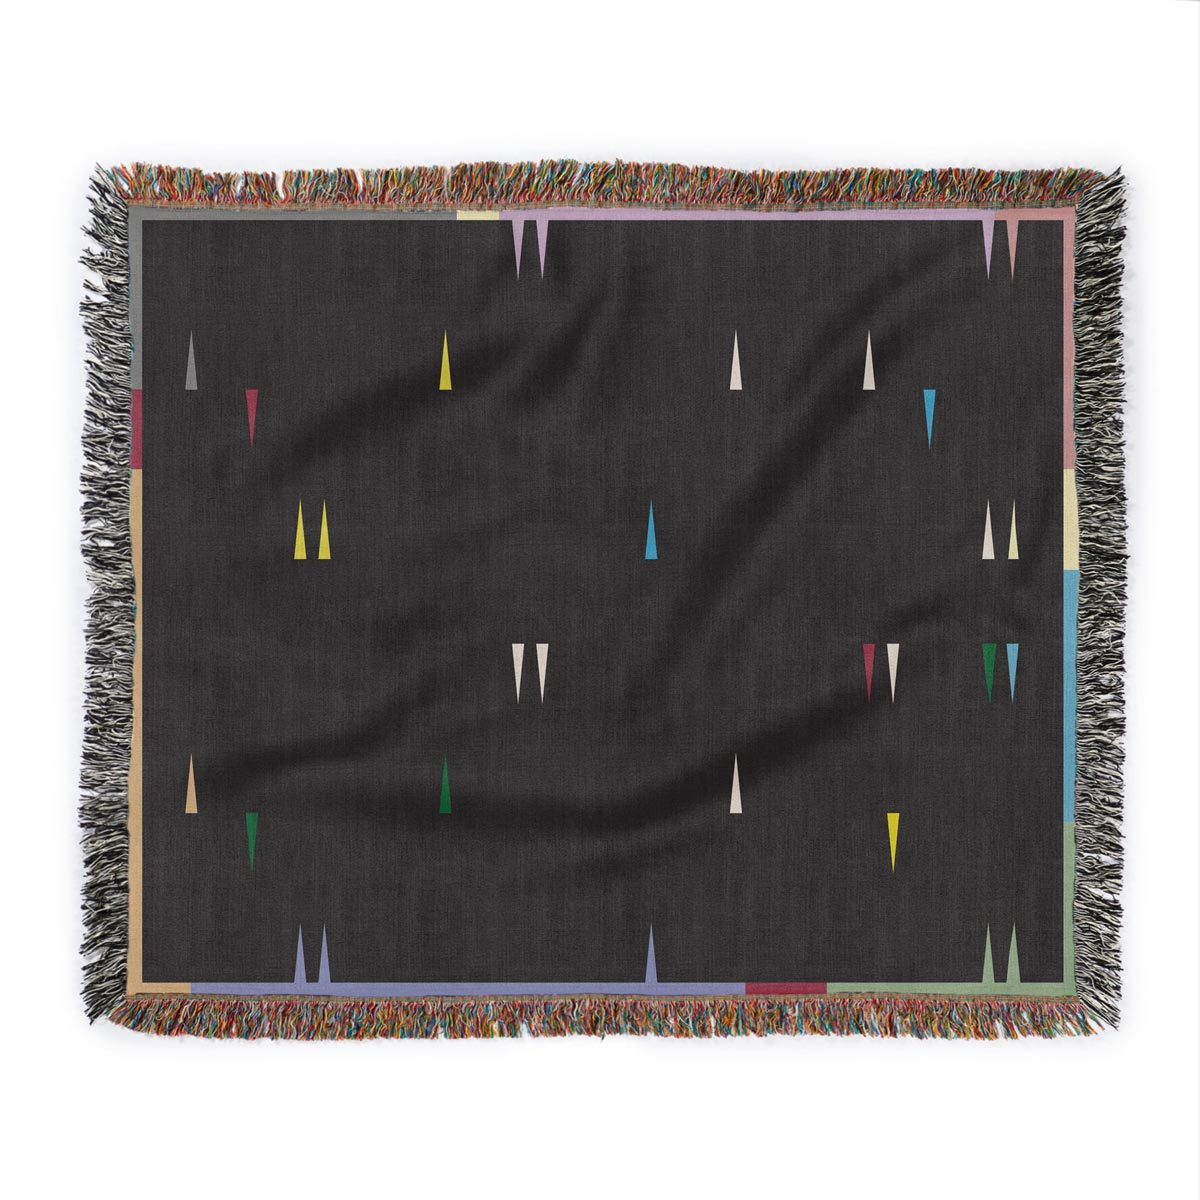 Fula V (dusk) – black woven cotton throw blanket with colorful triangles